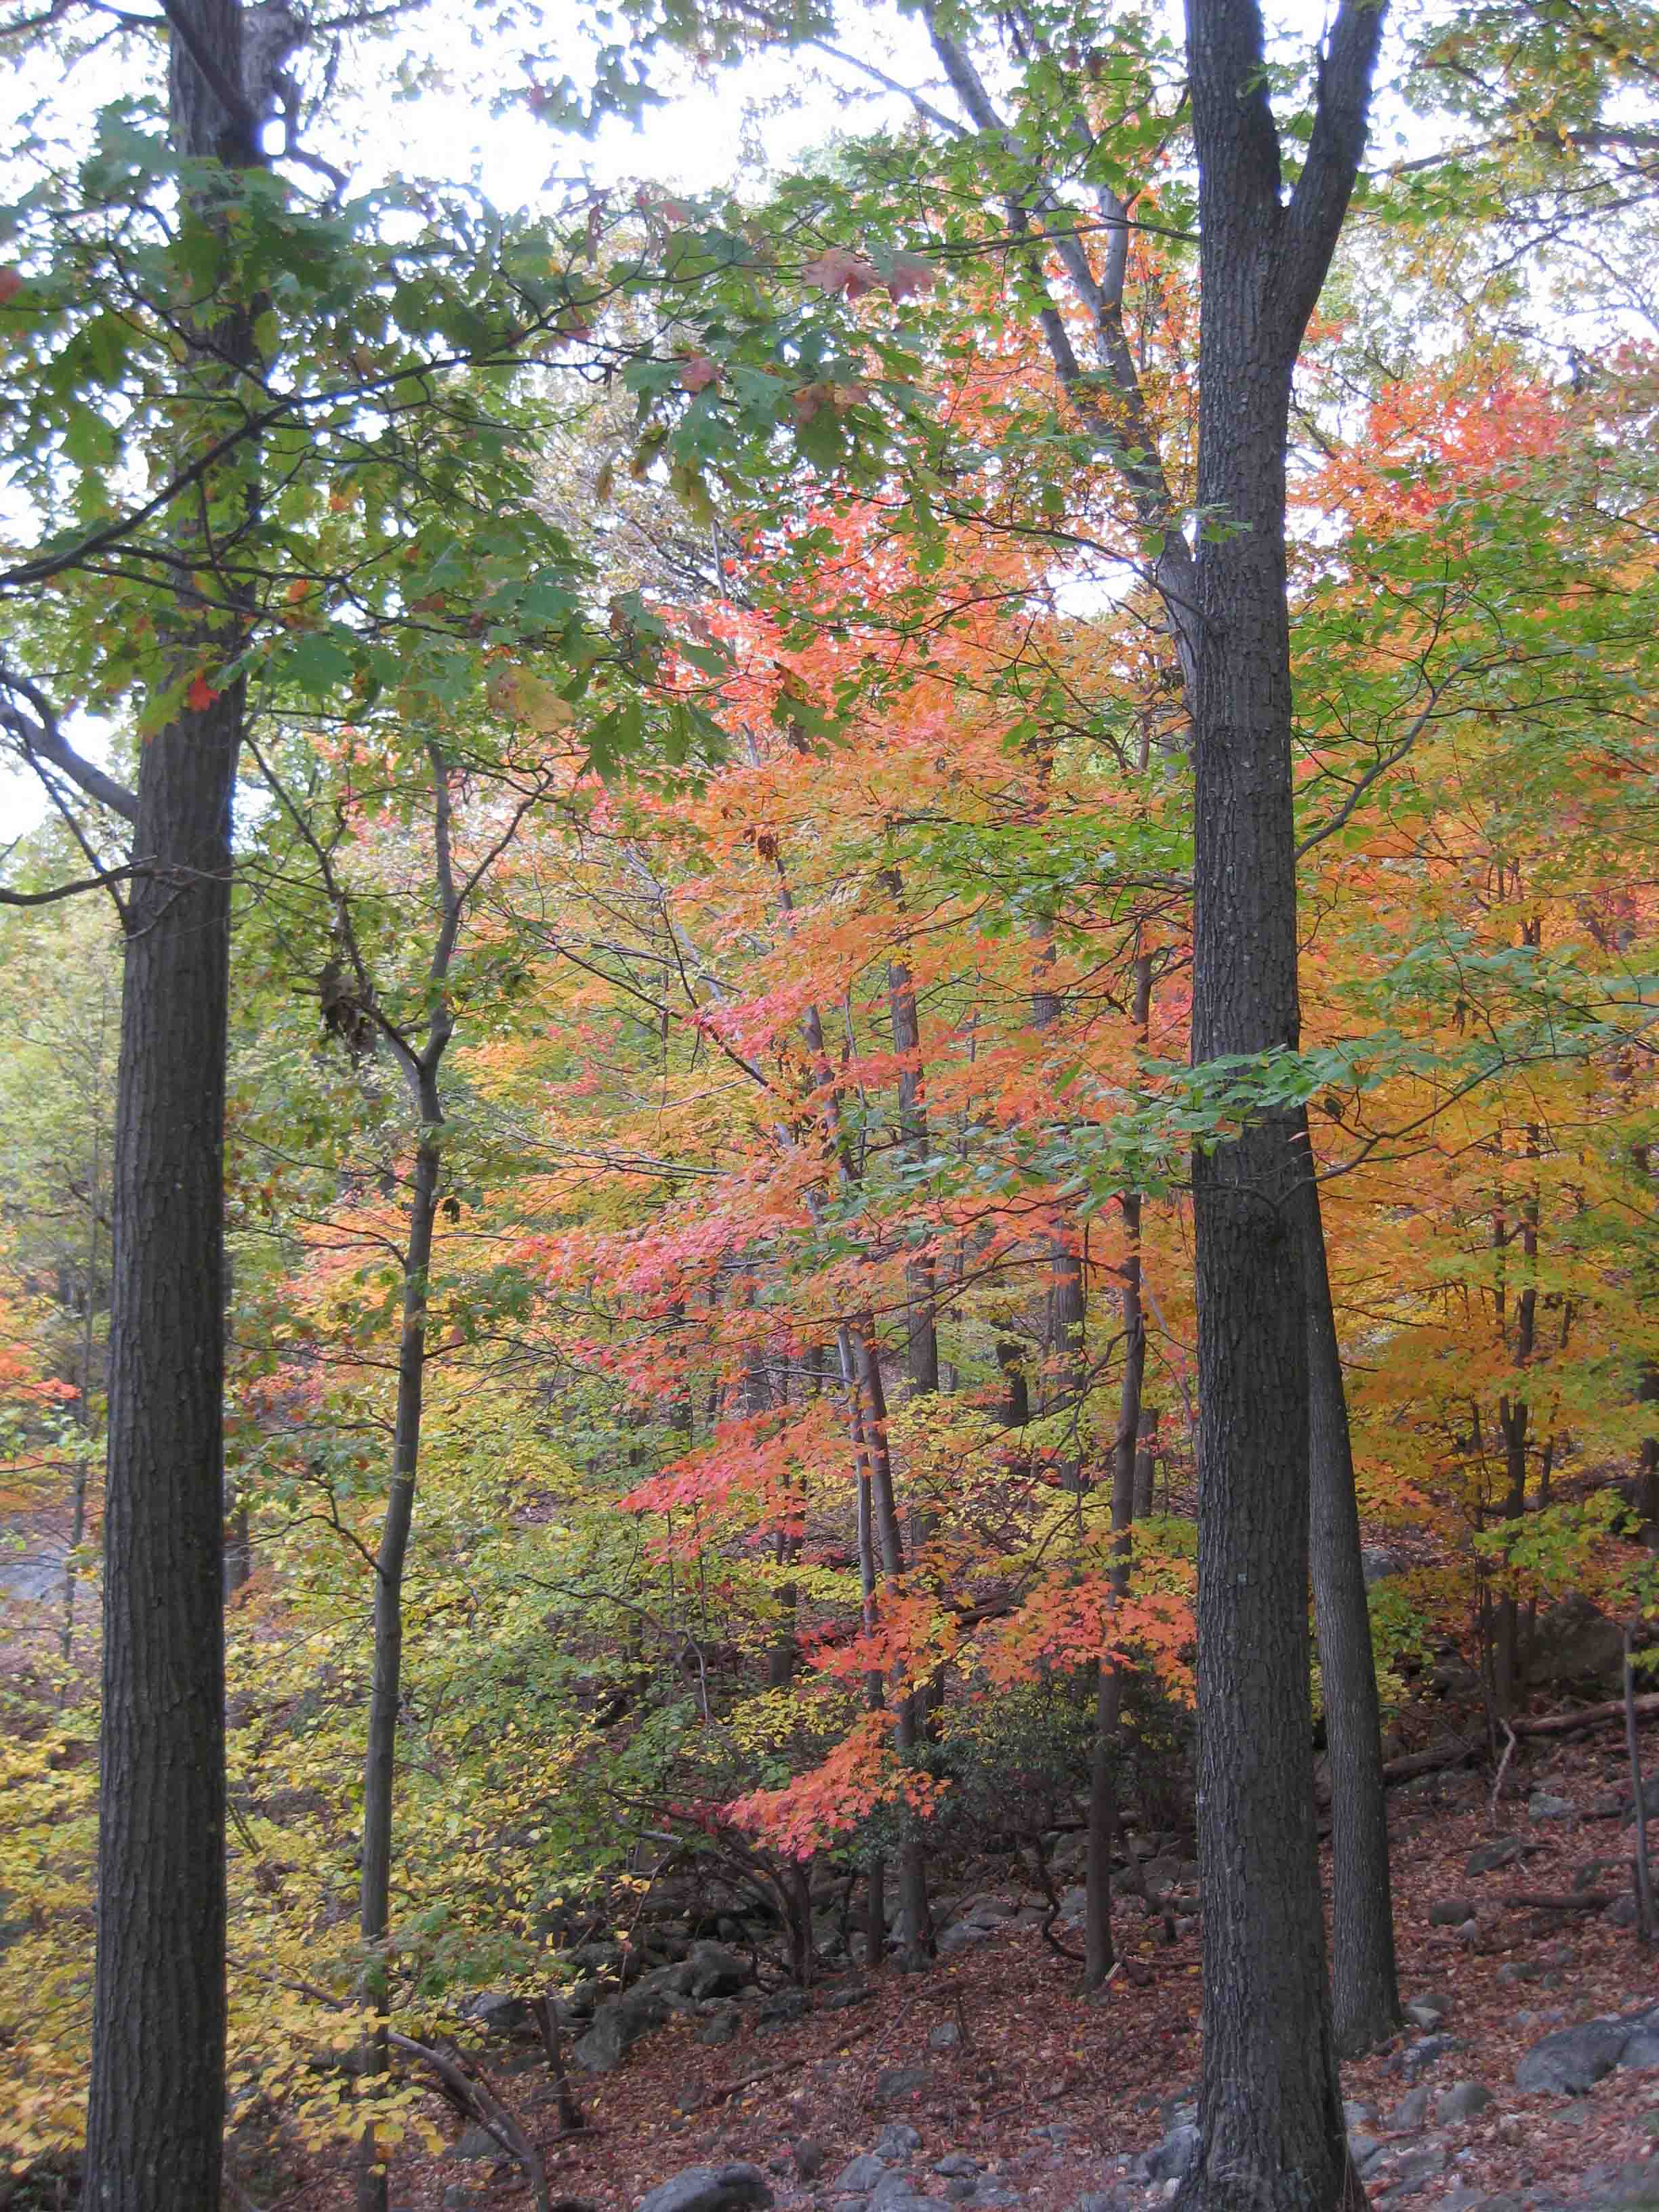 fall foliage at bear mountain state park in the hudson river valley